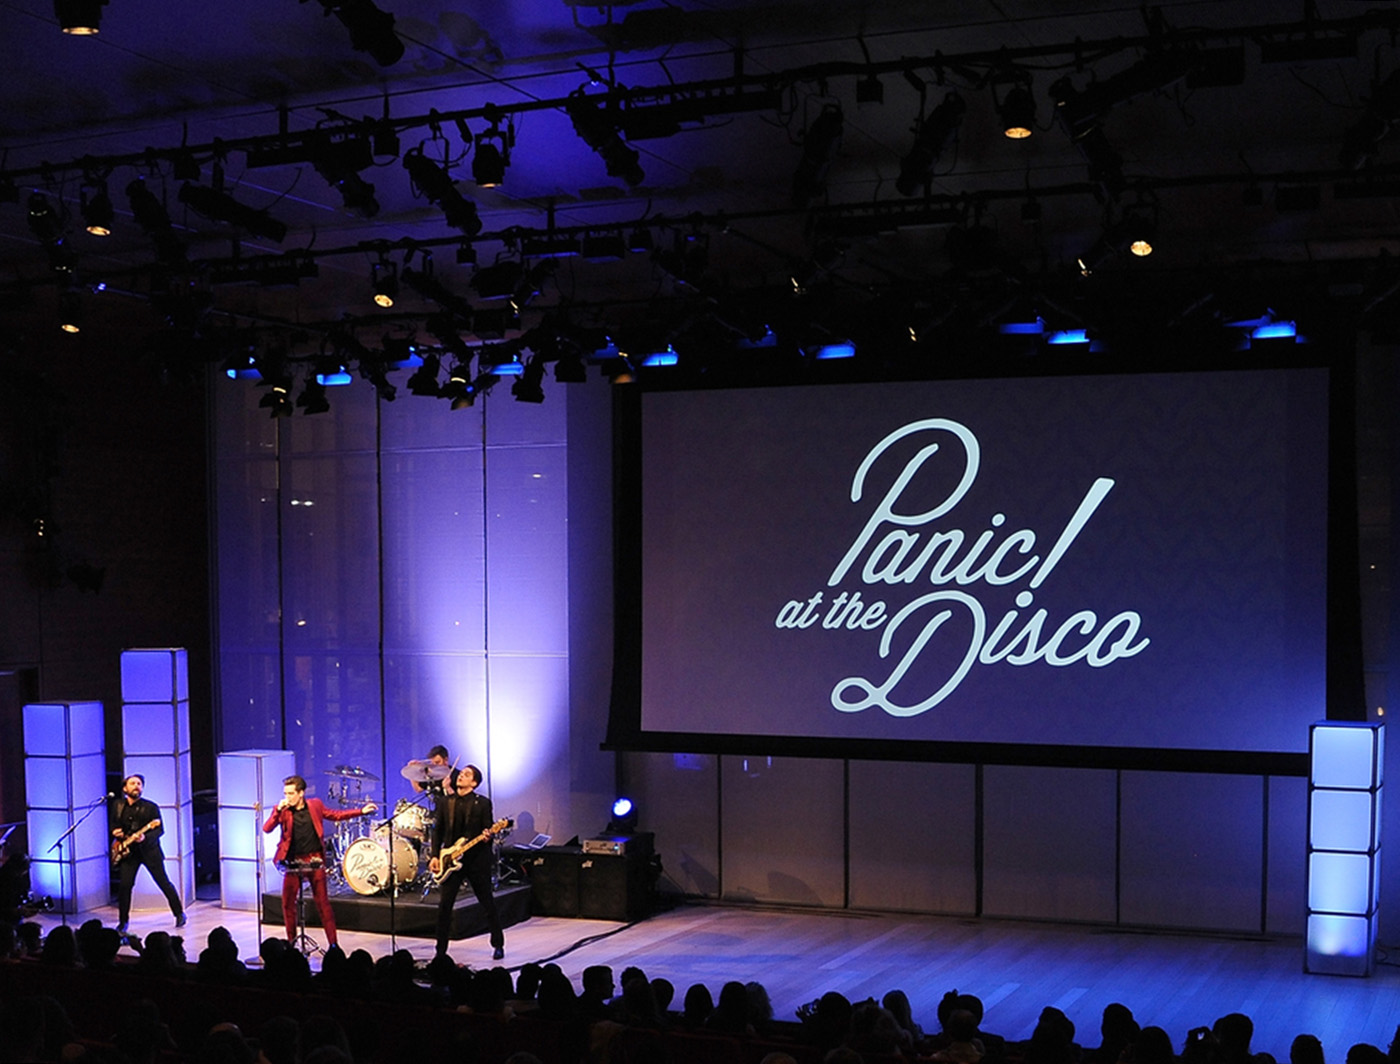 Frosty SUPERCOLUMNS are the supporting act for Panic at the Disco at the 2015 Shorty Awards